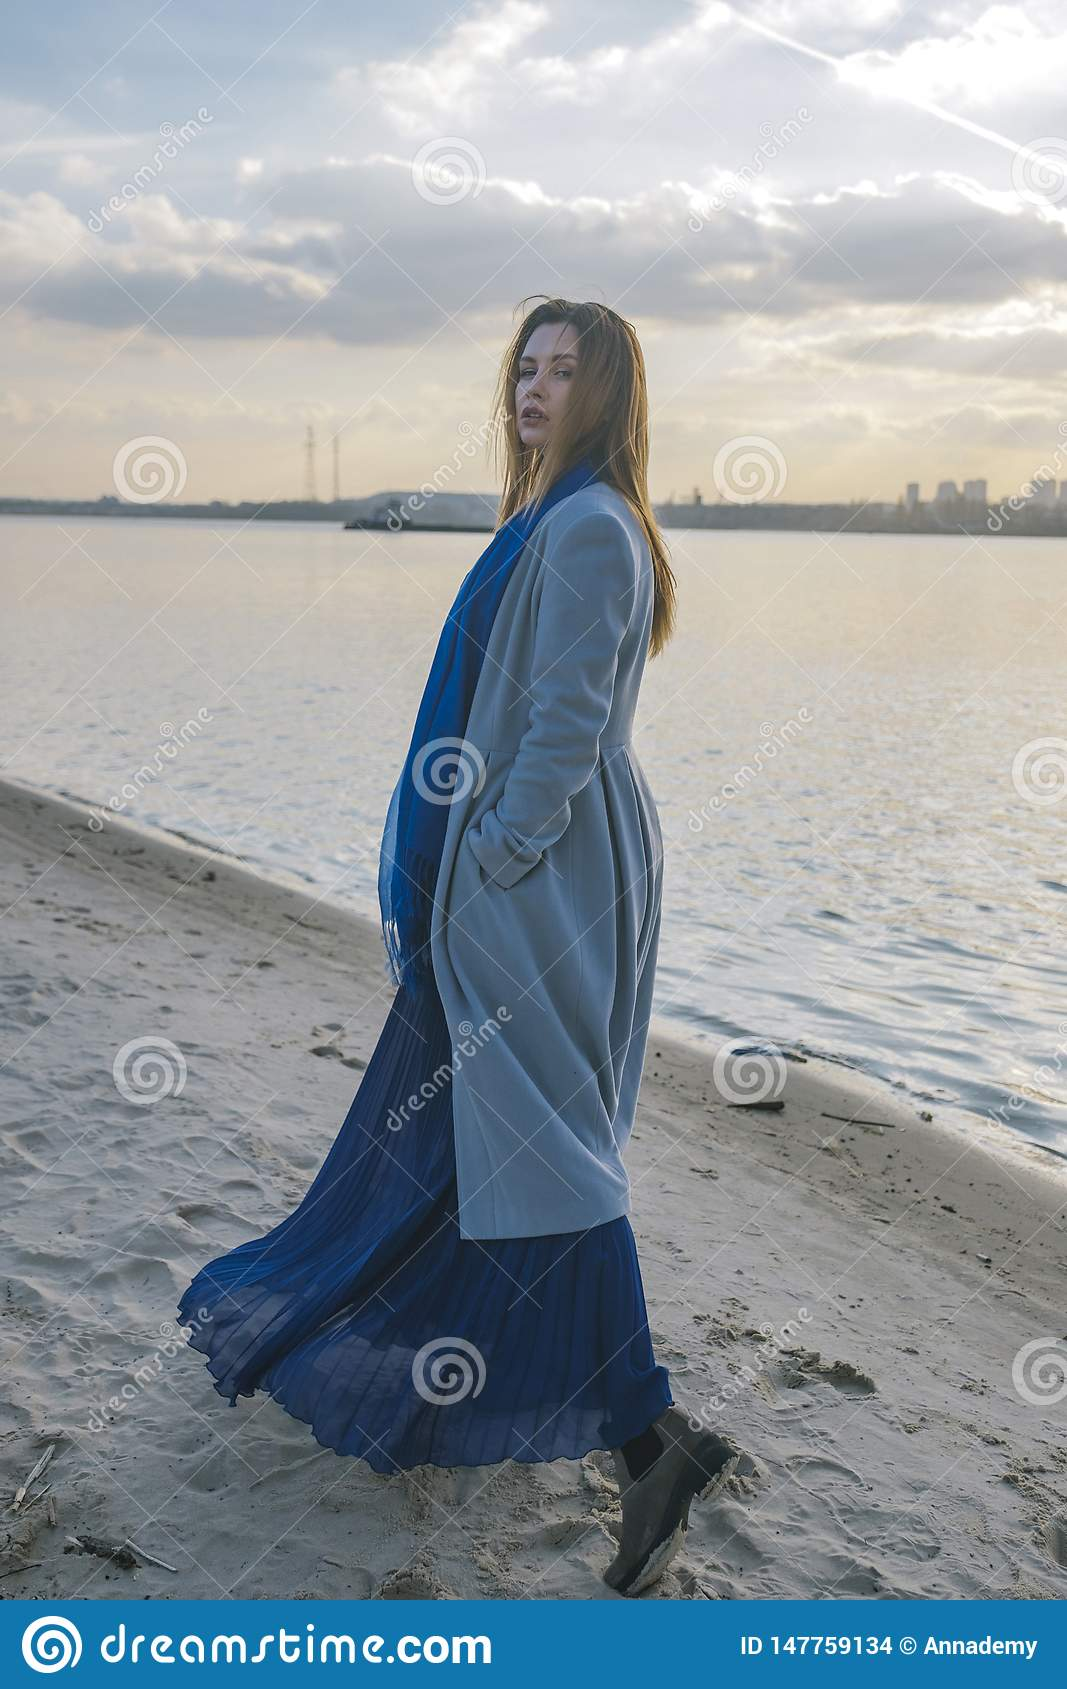 Gorgeous european woman in warm coat and dress on a walk in park near river. Windy weather. Her clothes fly in the wind. Sad,